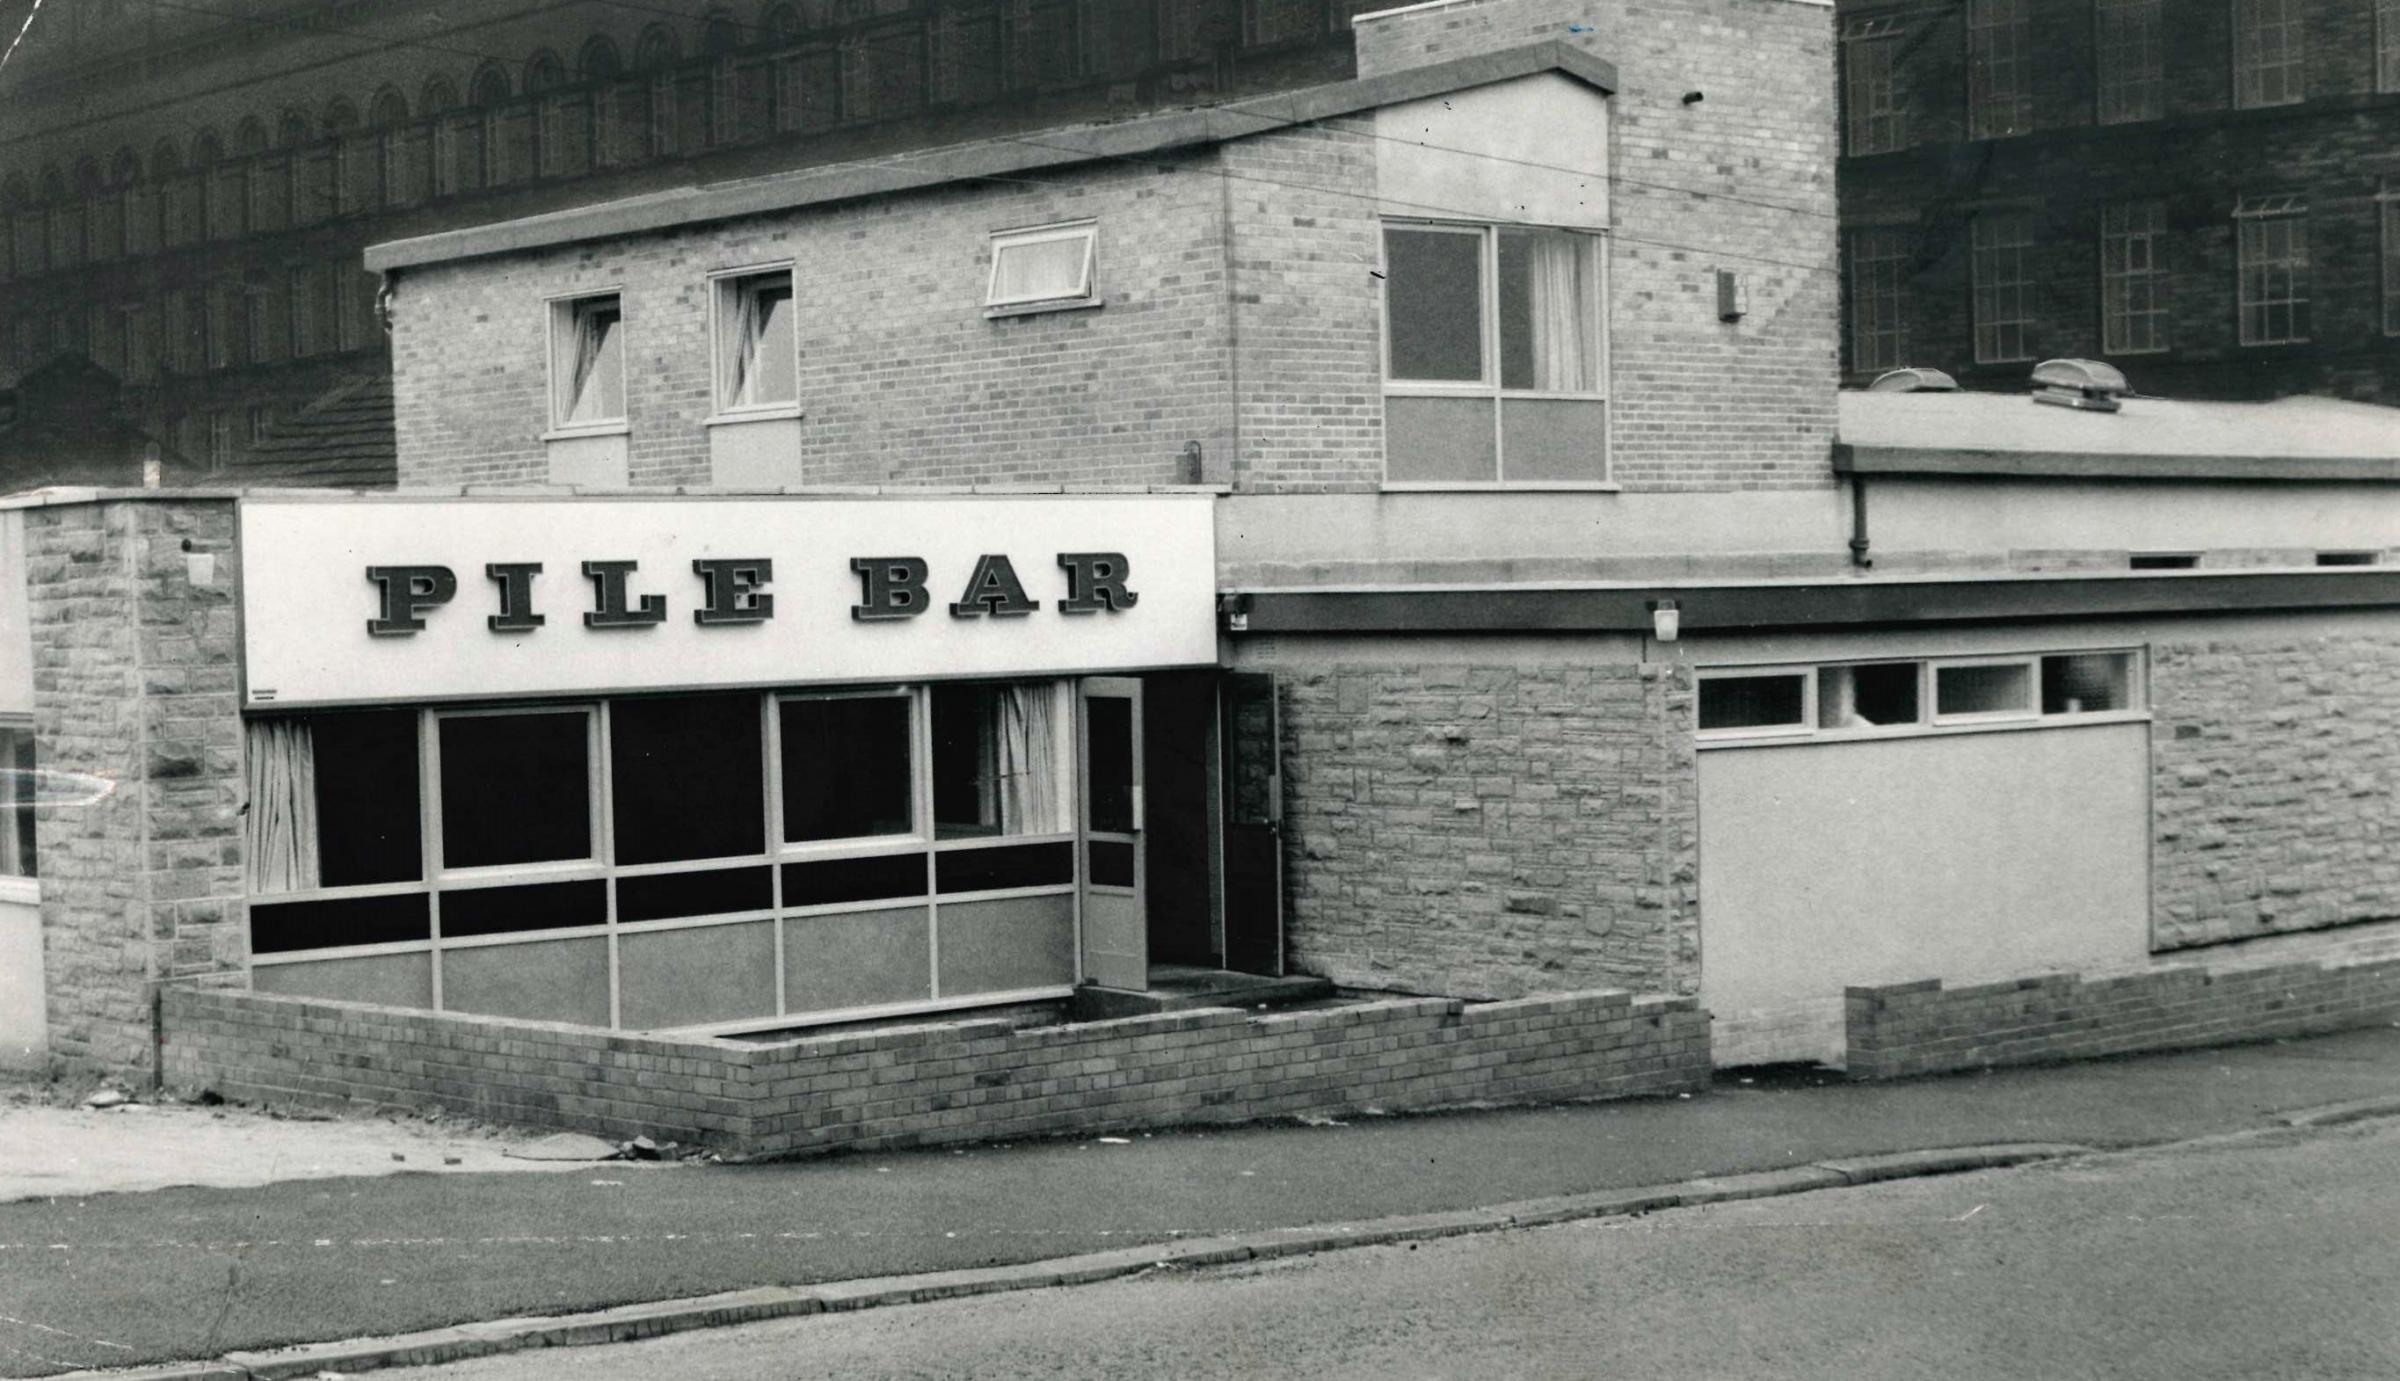 The pub that piled on the plush style